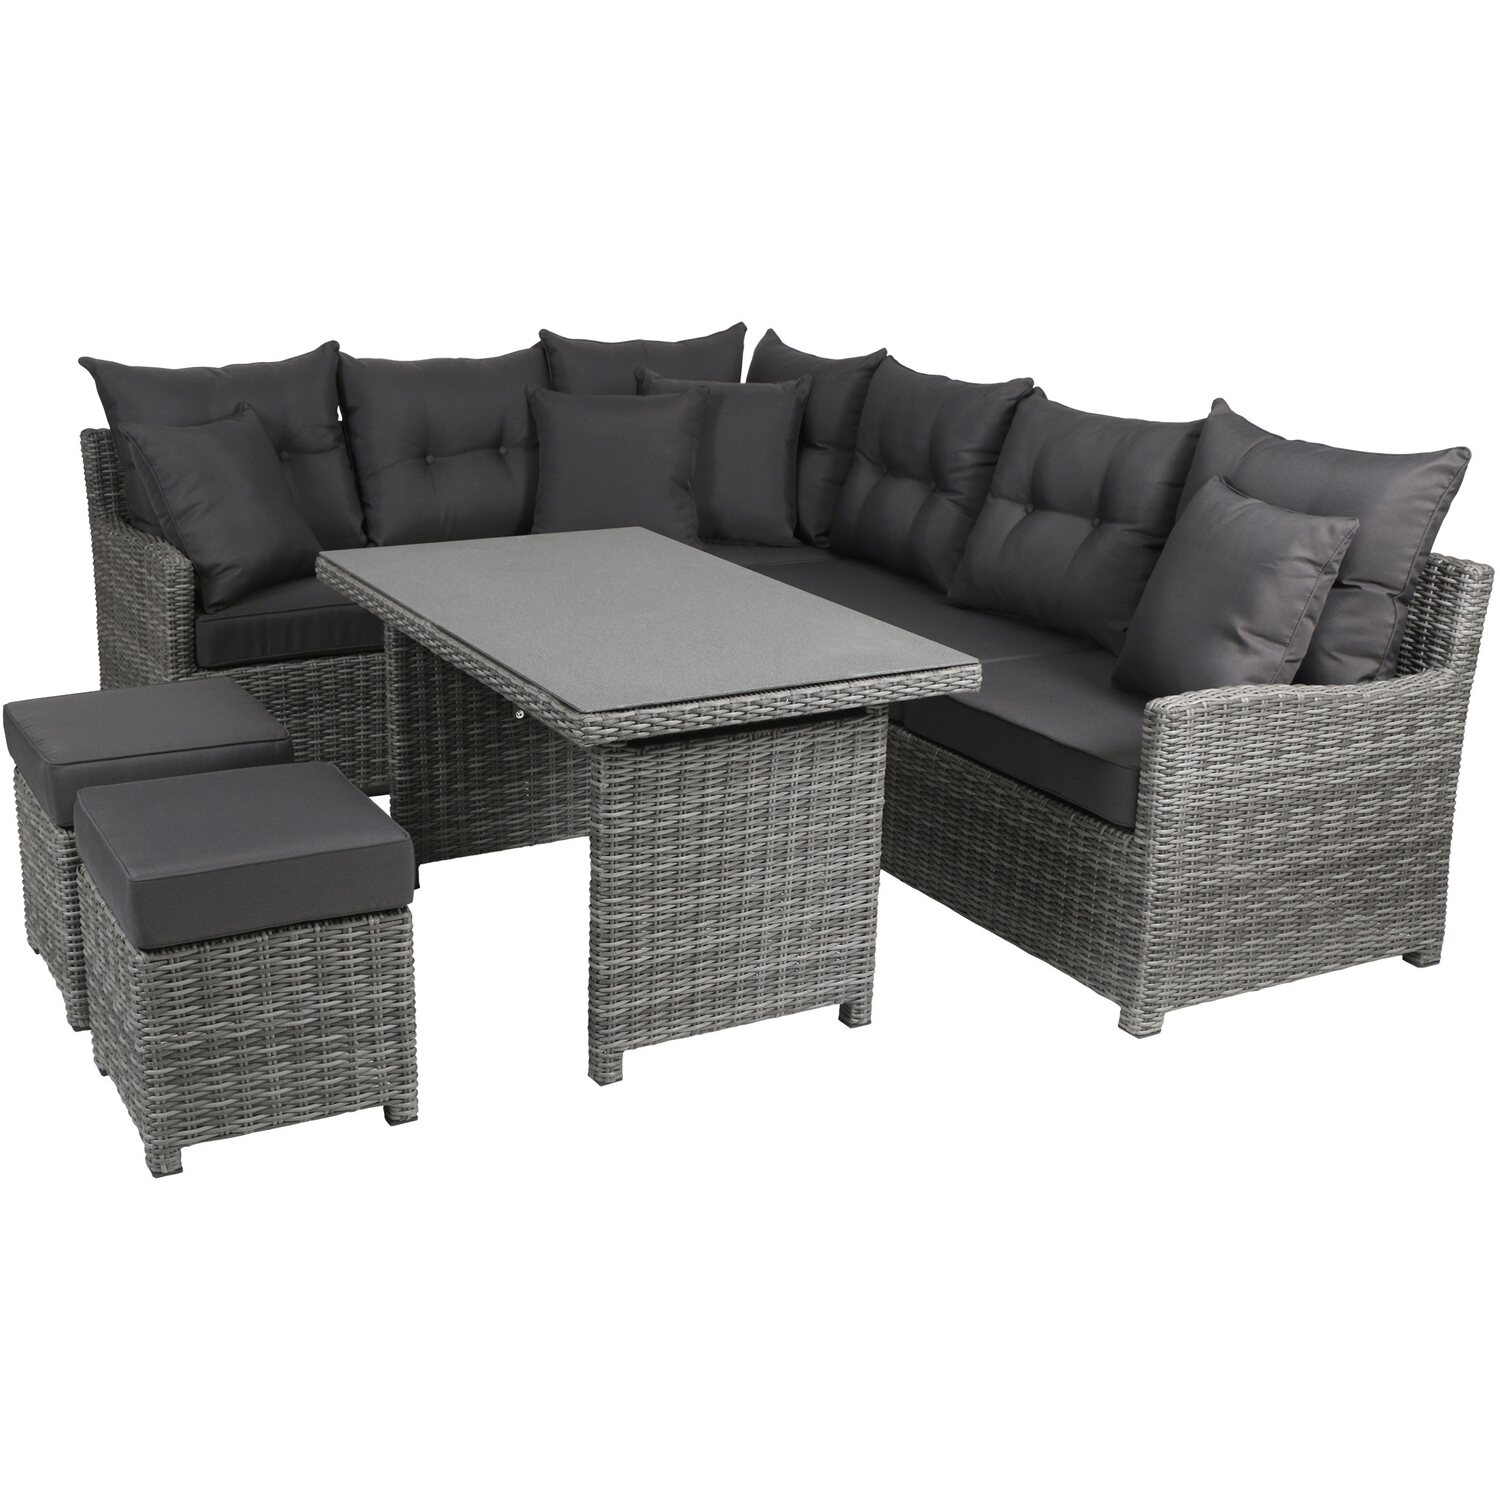 gartenm bel set rattan obi. Black Bedroom Furniture Sets. Home Design Ideas